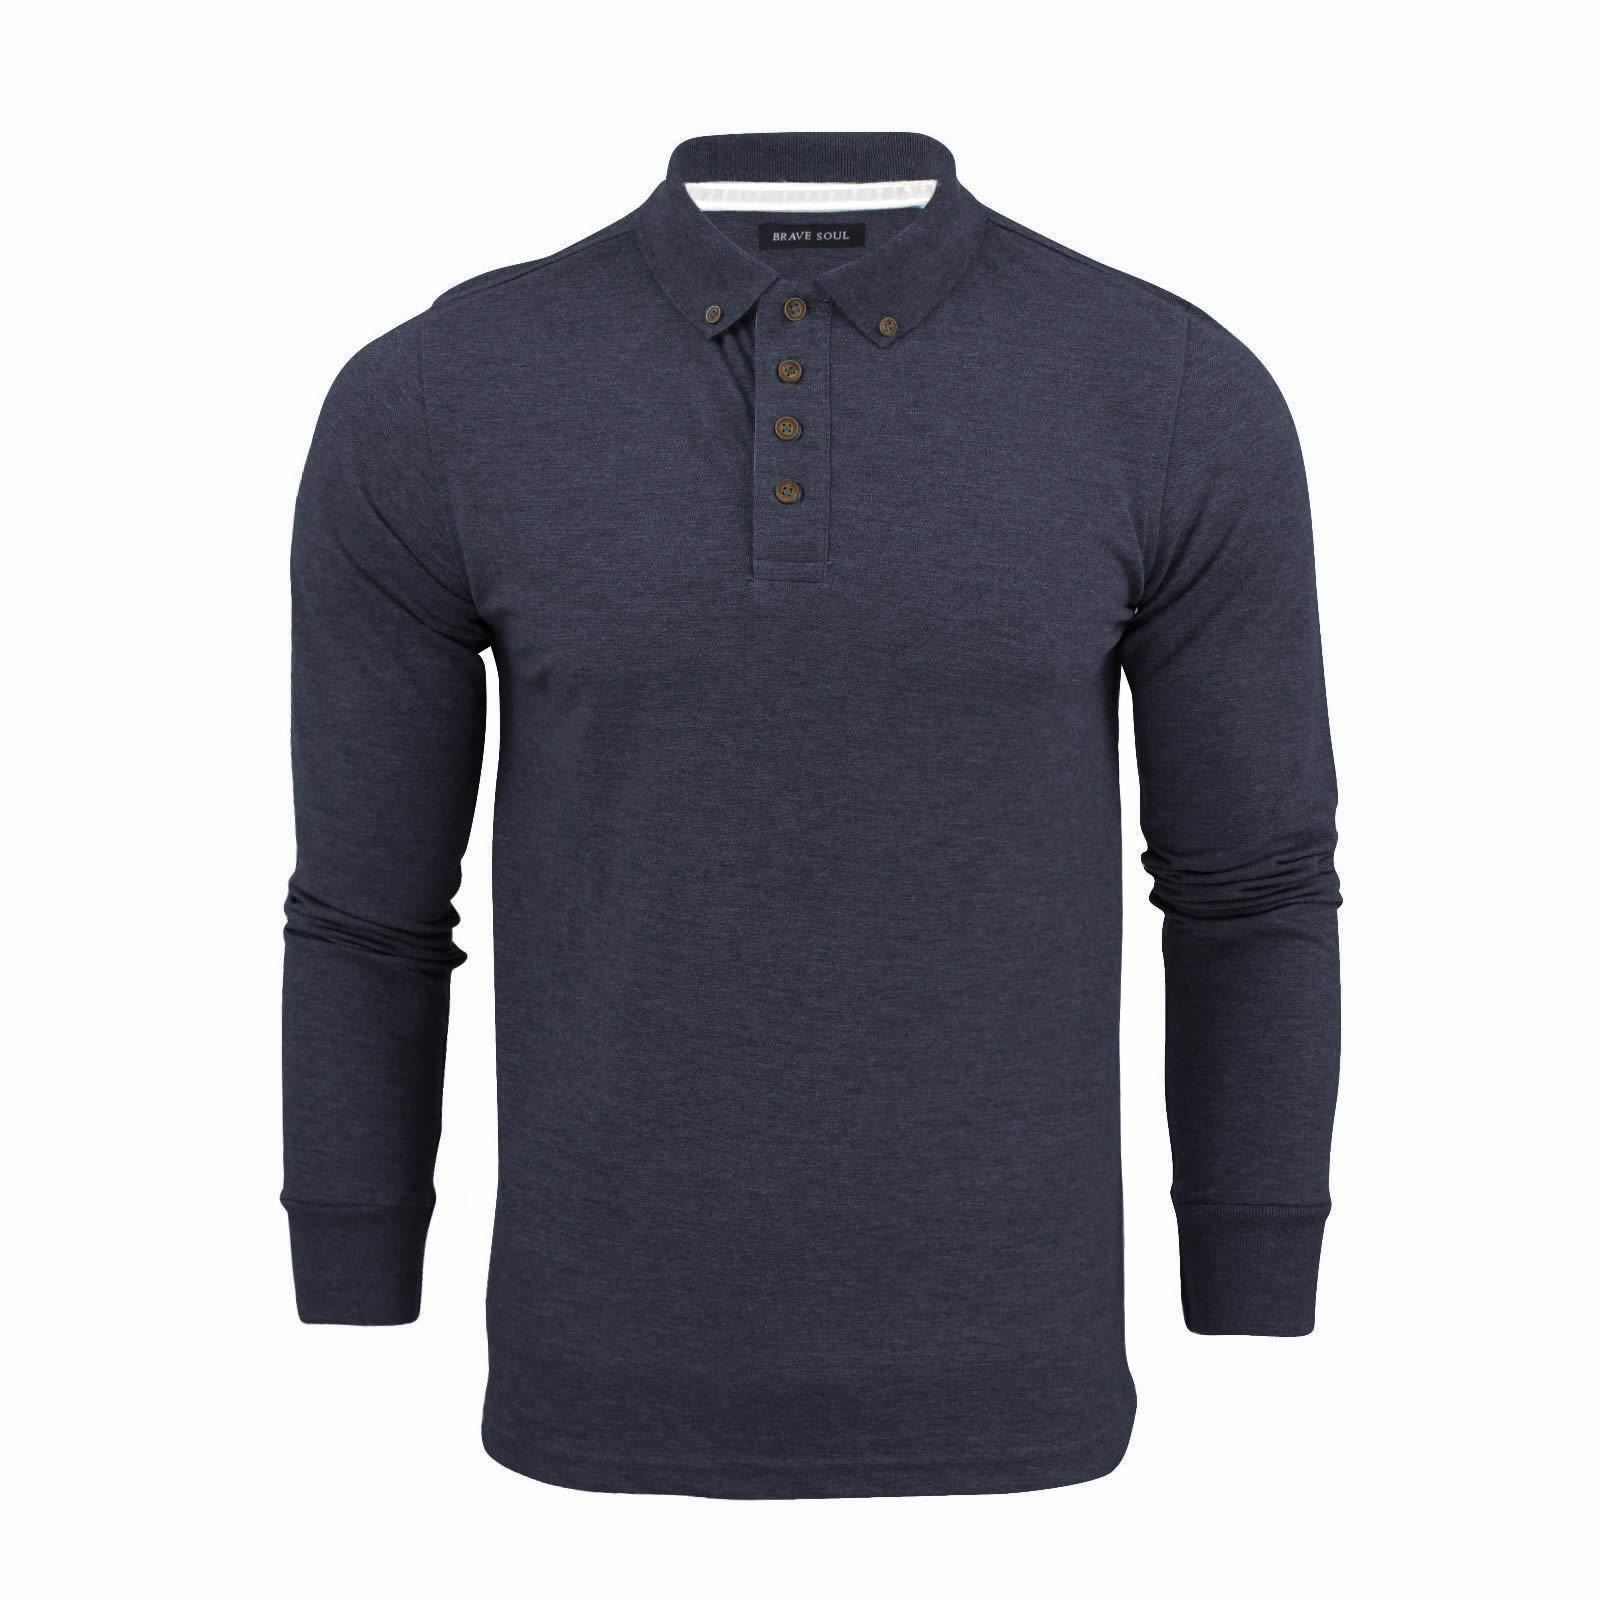 Brave-Soul-Lincoln-Homme-Polo-Shirt-a-Manches-Longues-En-Coton-Pique-Top-Casual miniature 44